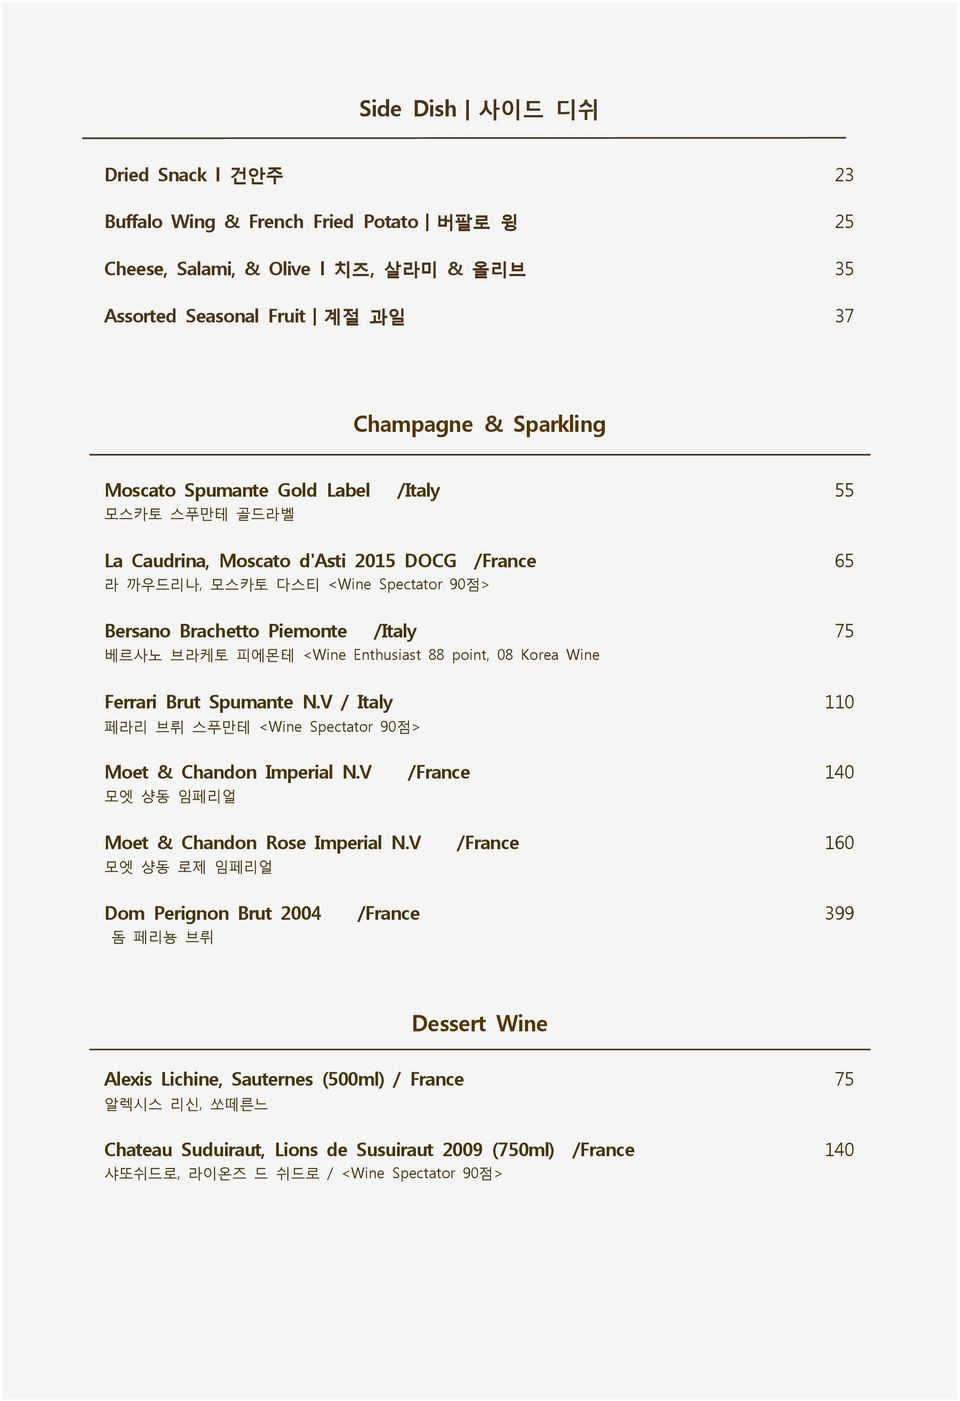 point, 08 Korea Wine Ferrari Brut Spumante N.V / Italy 110 페라리 브뤼 스푸만테 <Wine Spectator 90점> Moet & Chandon Imperial N.V /France 140 모엣 샹동 임페리얼 Moet & Chandon Rose Imperial N.